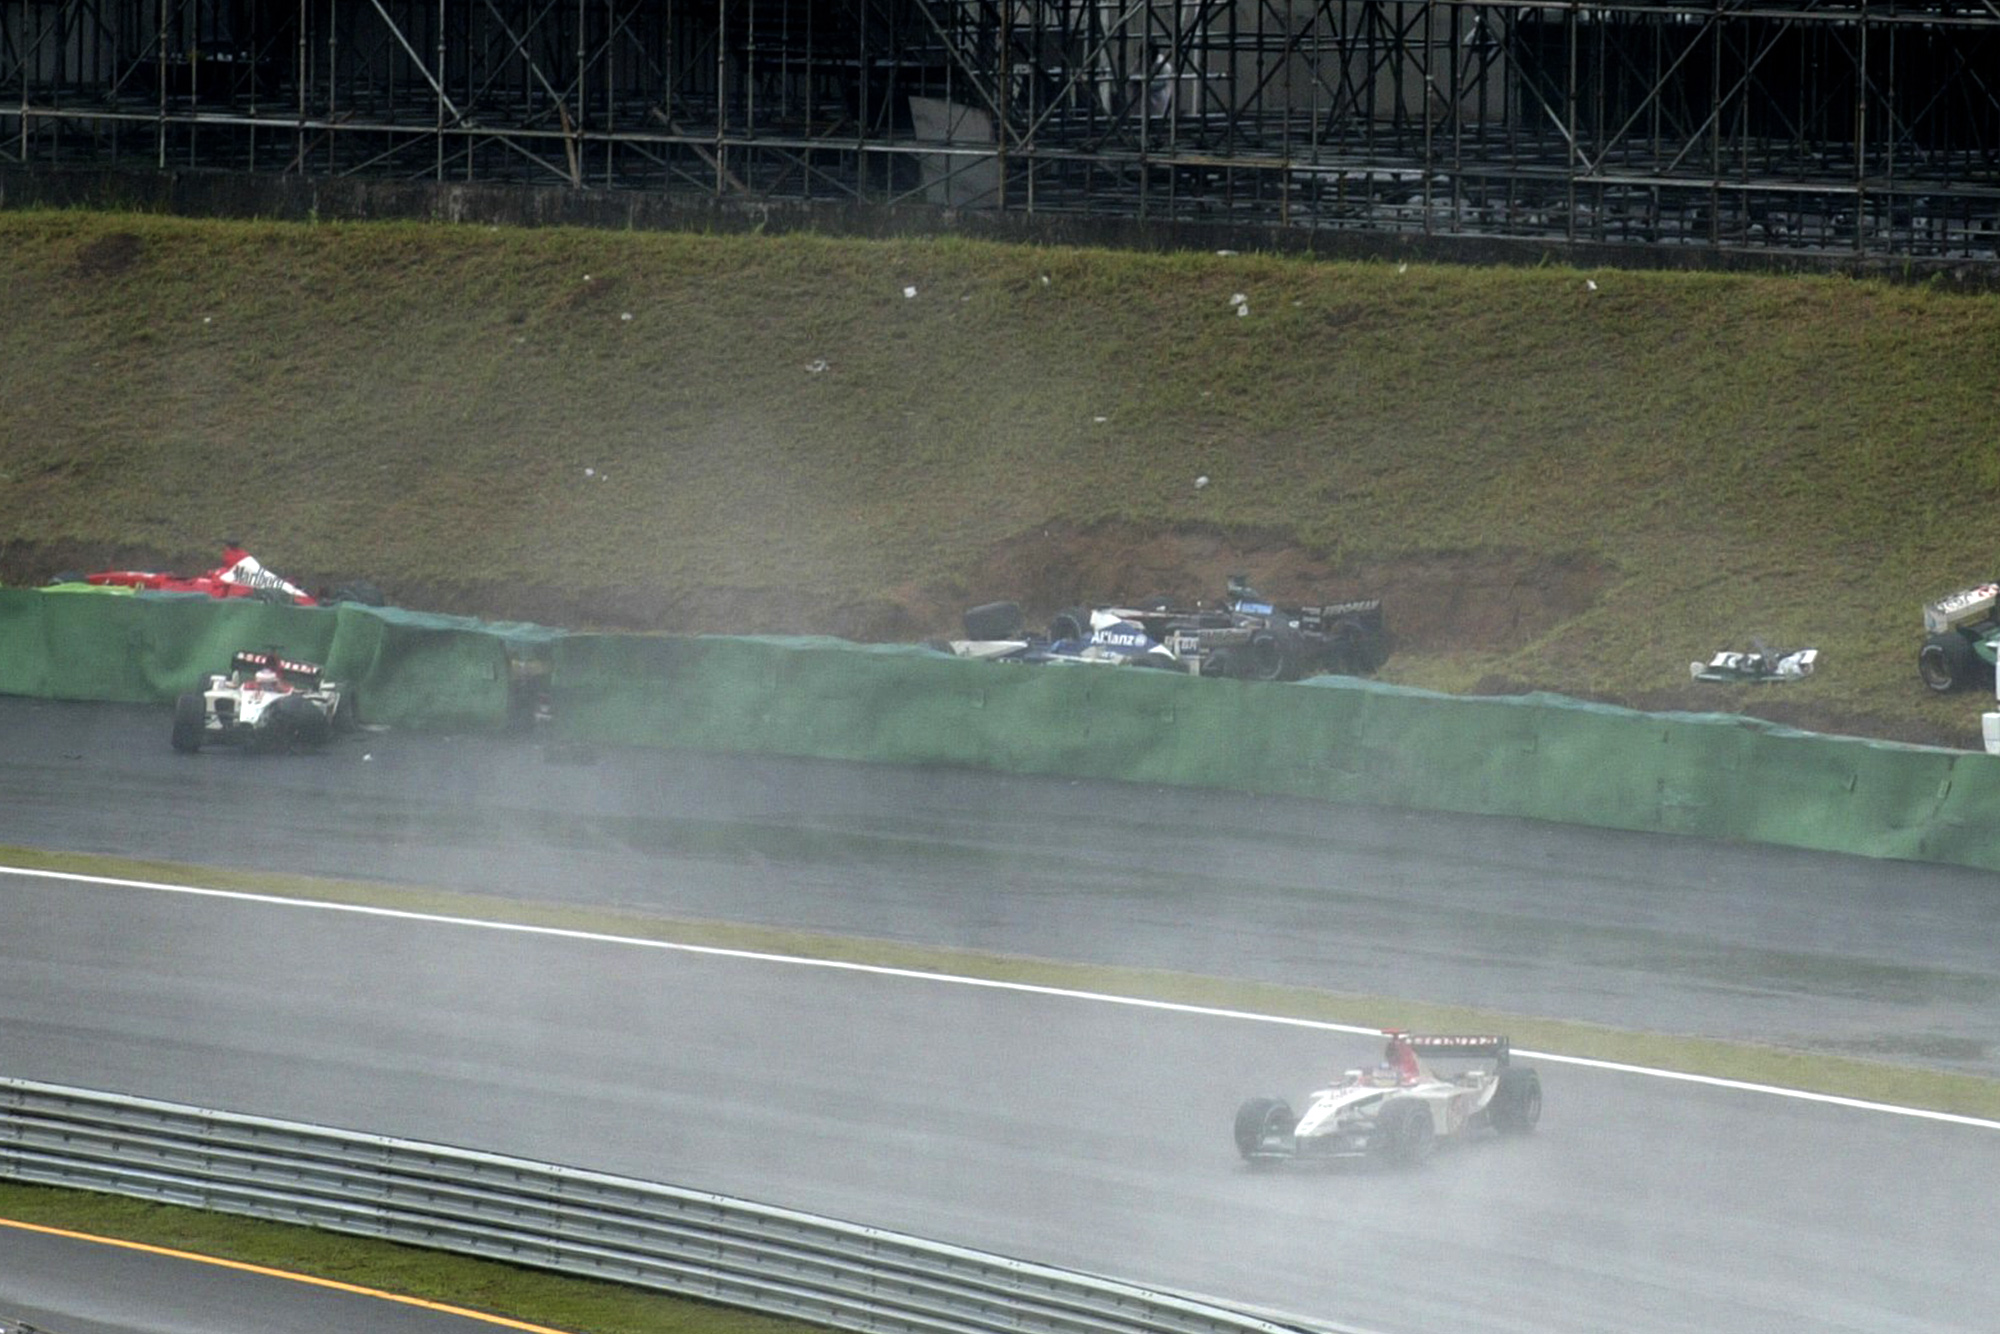 Cars aquaplane off the track during the 2003 Brazilian Grand Prix